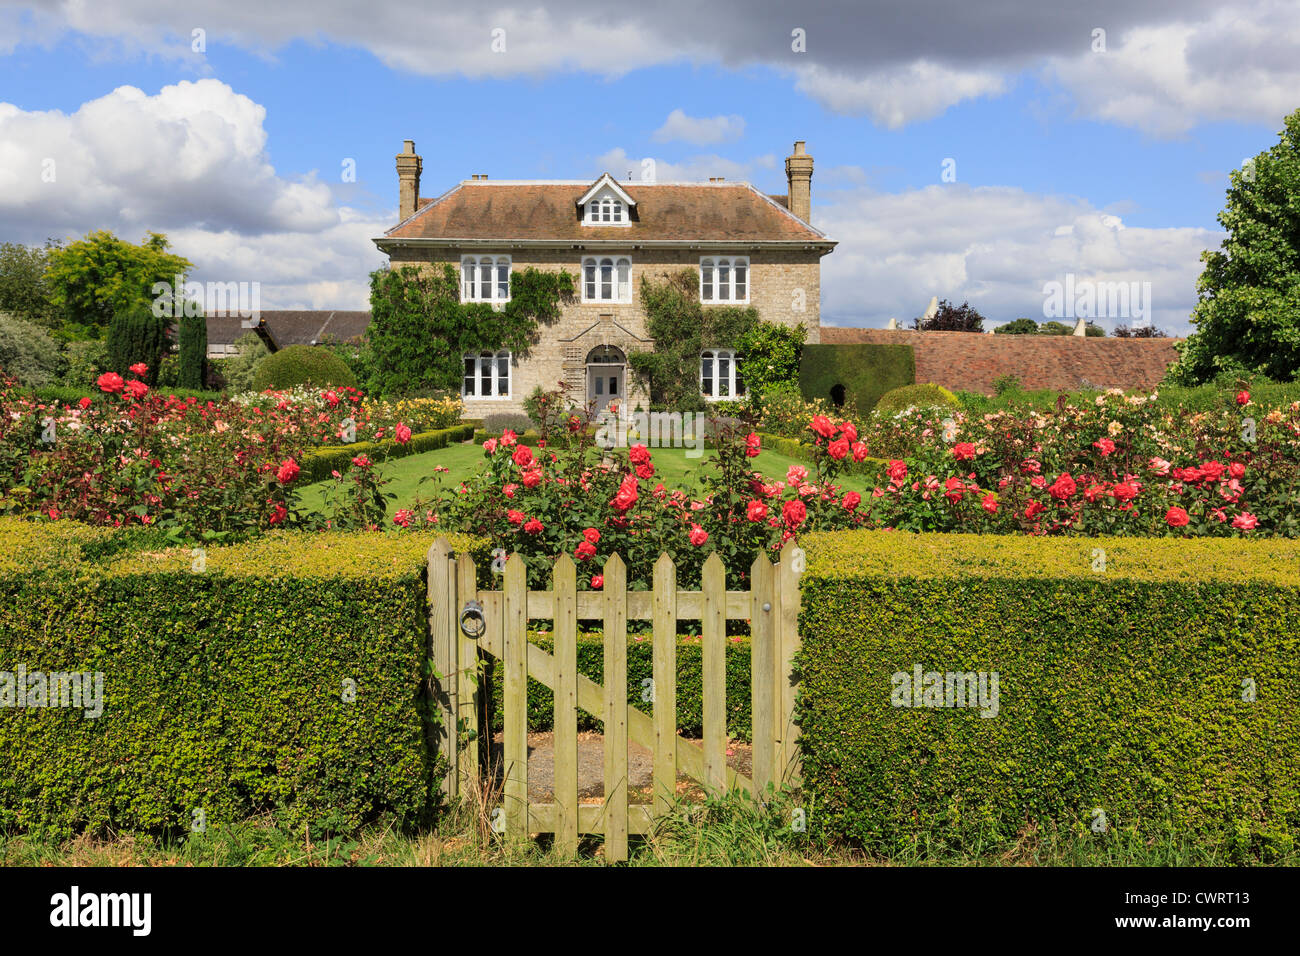 Hedge With Gate To Rose Garden In Front Of A 19th Century English Country House Summer Pluckley Kent England UK Britain